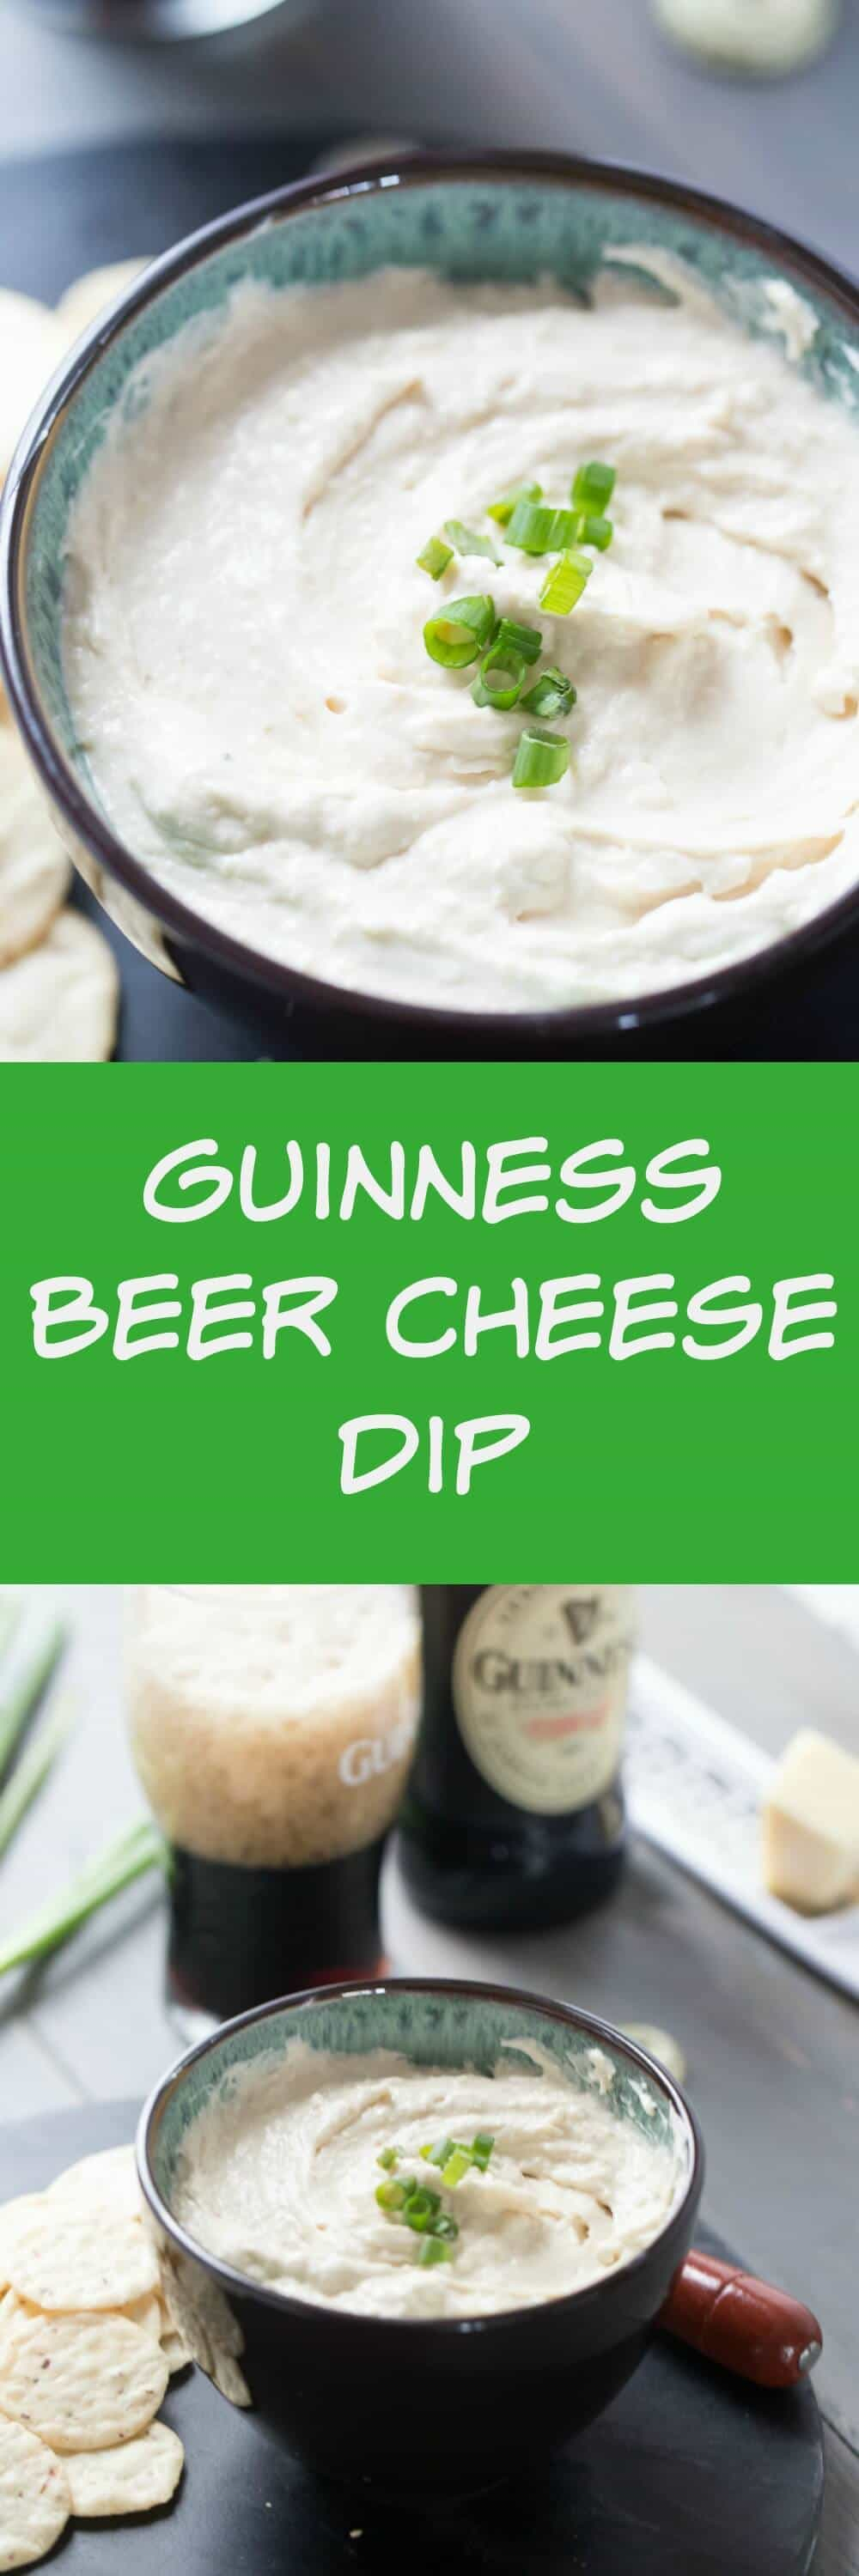 This Guinness beer cheese dip has a subtle stout flavor that glances the sharp white cheddar. This appetizer dip is creamy and smooth and altogether delicious!